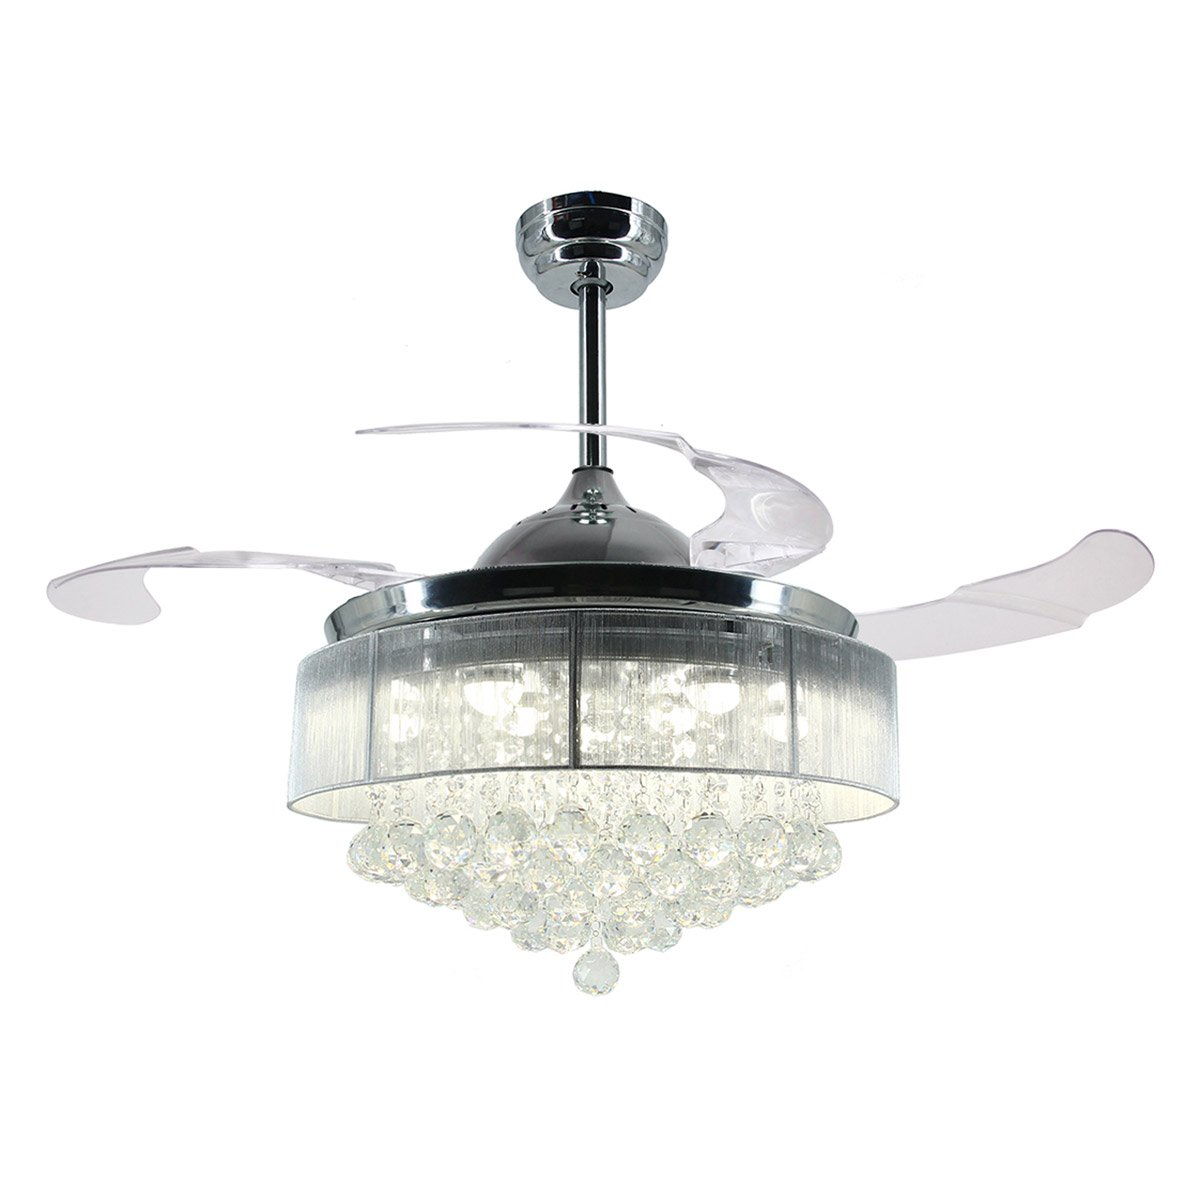 Buy parrot uncle ceiling fans with lights 42 modern led ceiling fan parrot uncle ceiling fans with lights 42 modern led ceiling fan retractable blades crystal chandelier arubaitofo Gallery